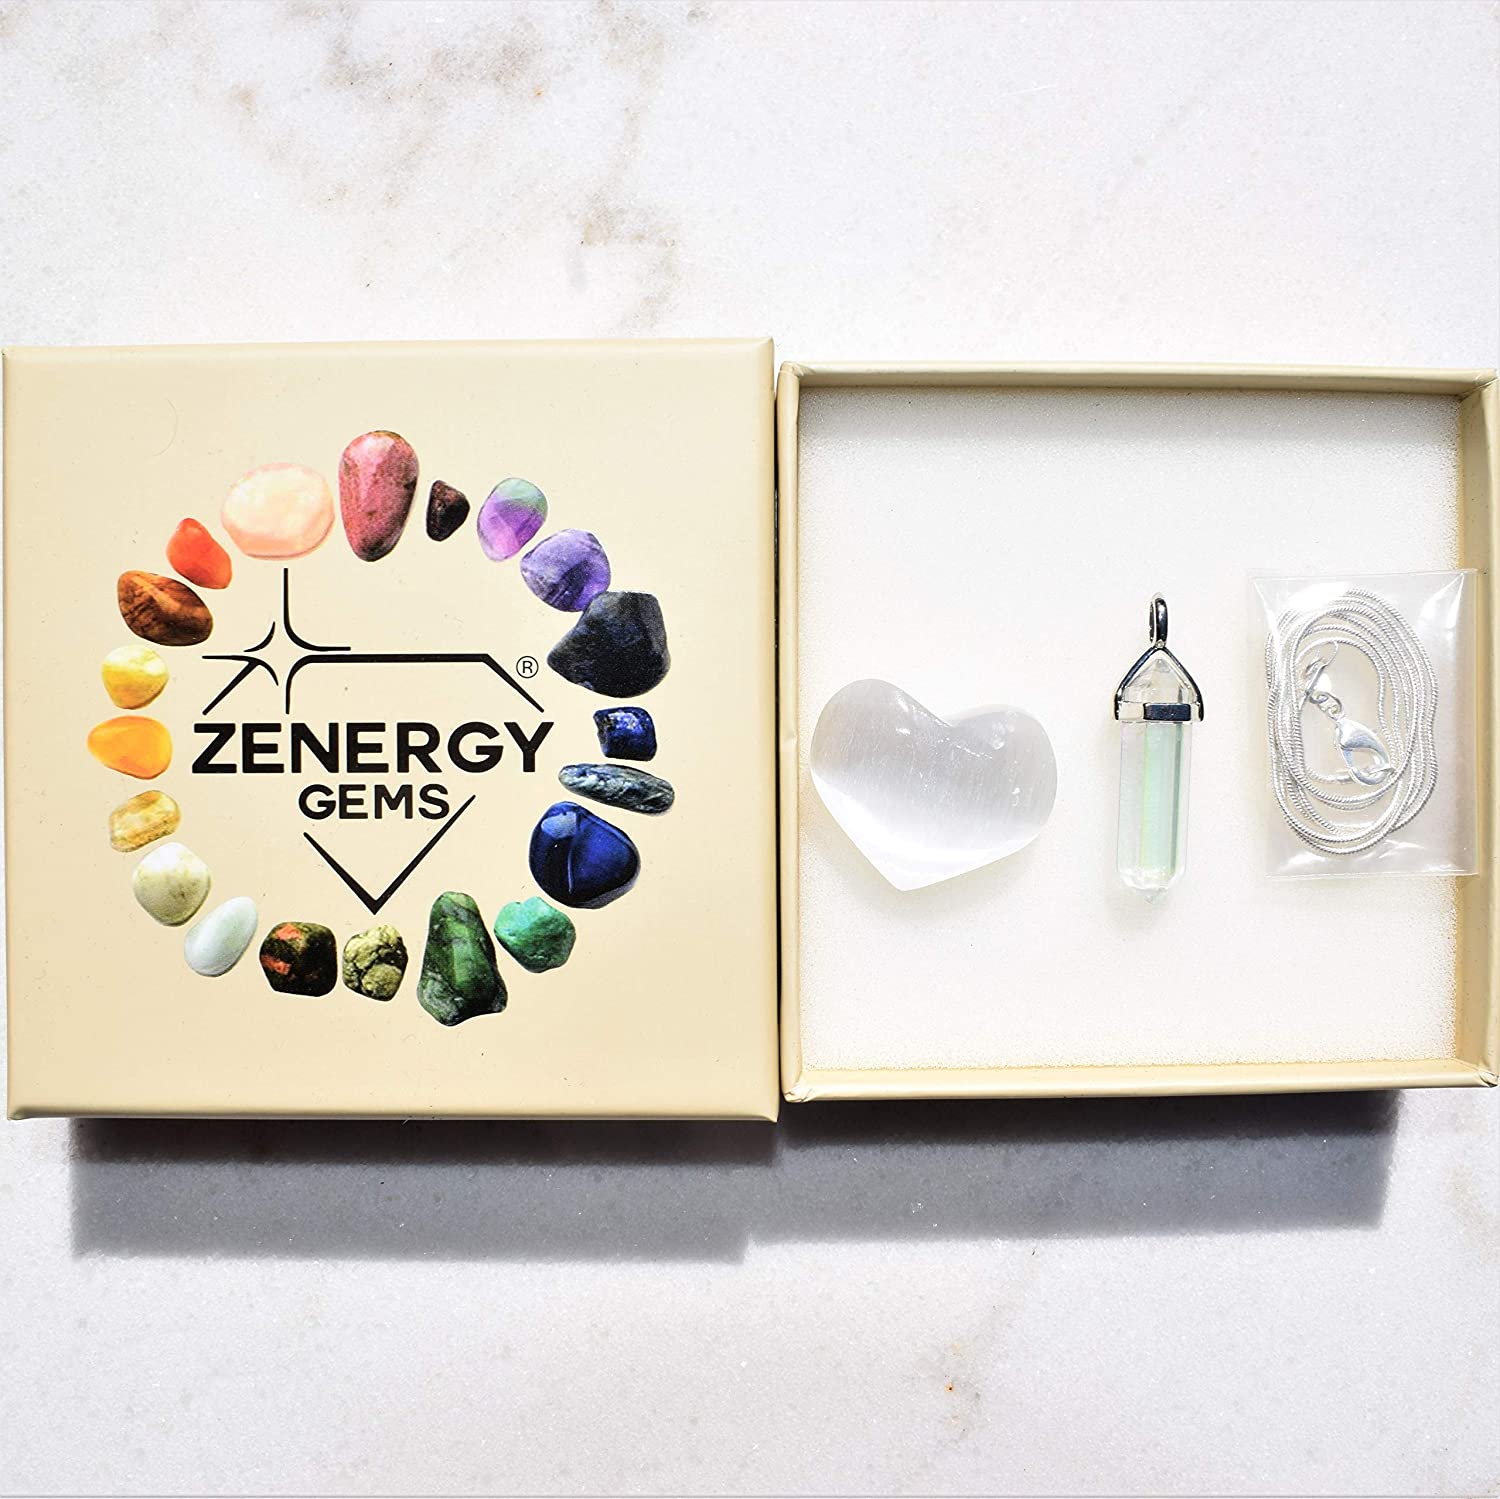 Zenergy Gems Selenite Charged Faceted Hand-Made Natural Gemstone Crystal Pendants